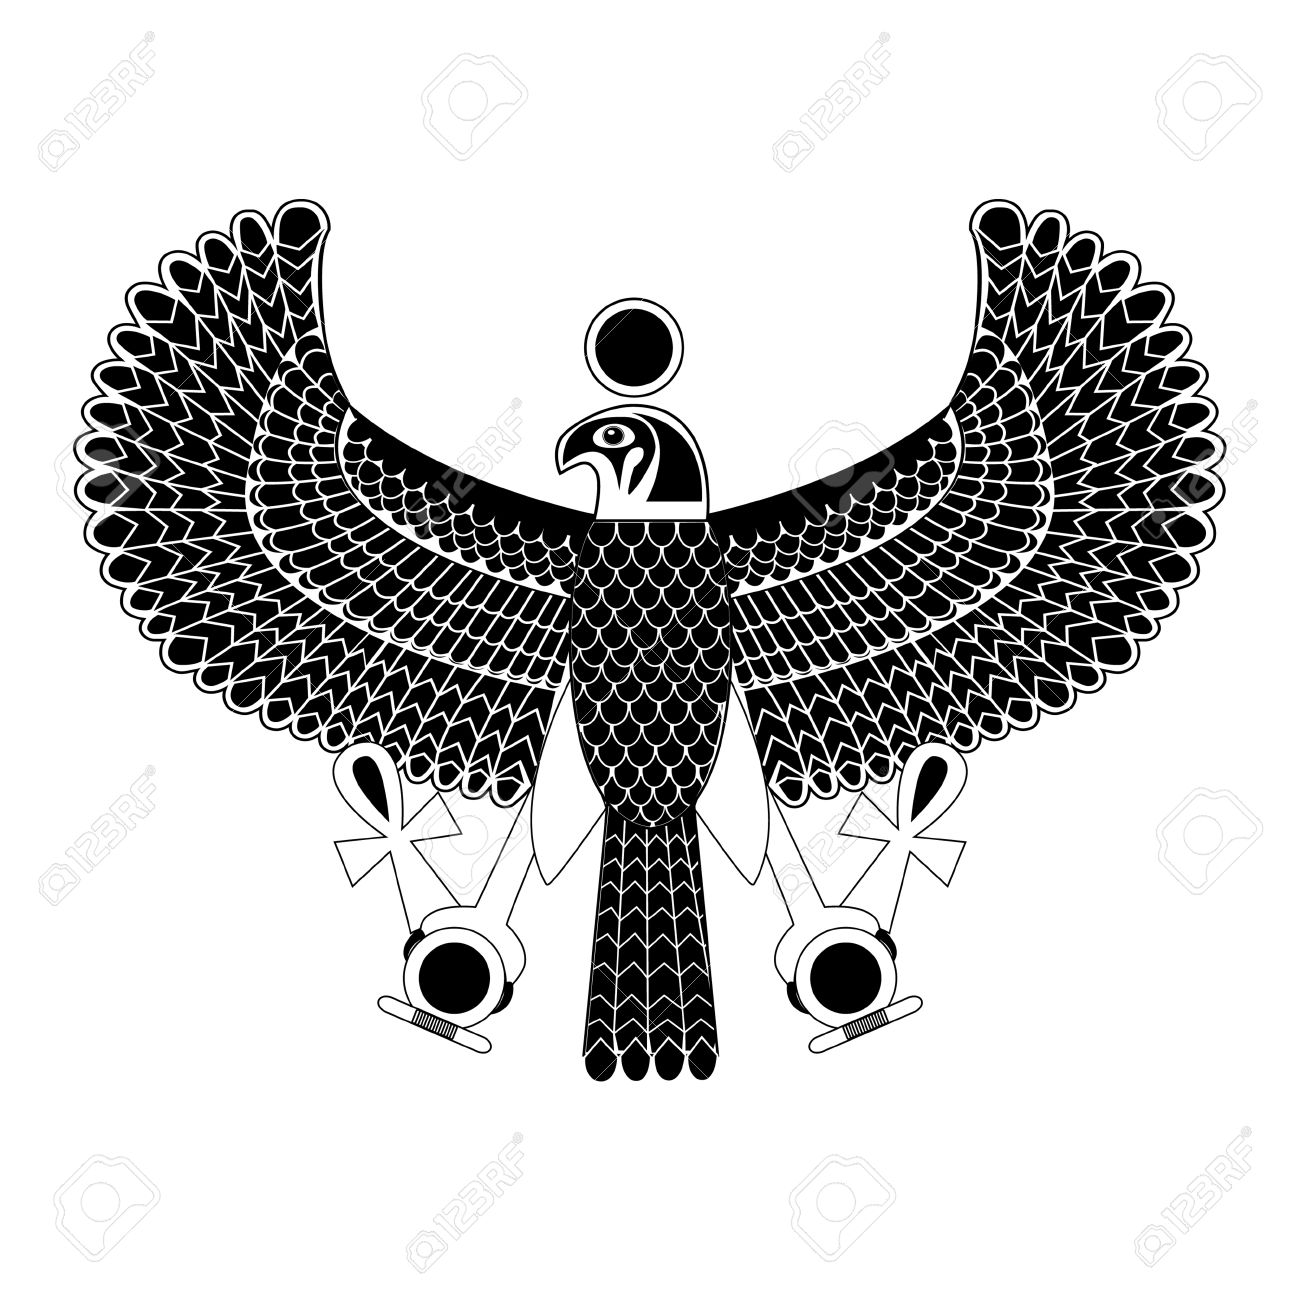 Black and white ancient egyptian symbol of horus the falcon god black and white ancient egyptian symbol of horus the falcon god stock vector 36746072 buycottarizona Image collections